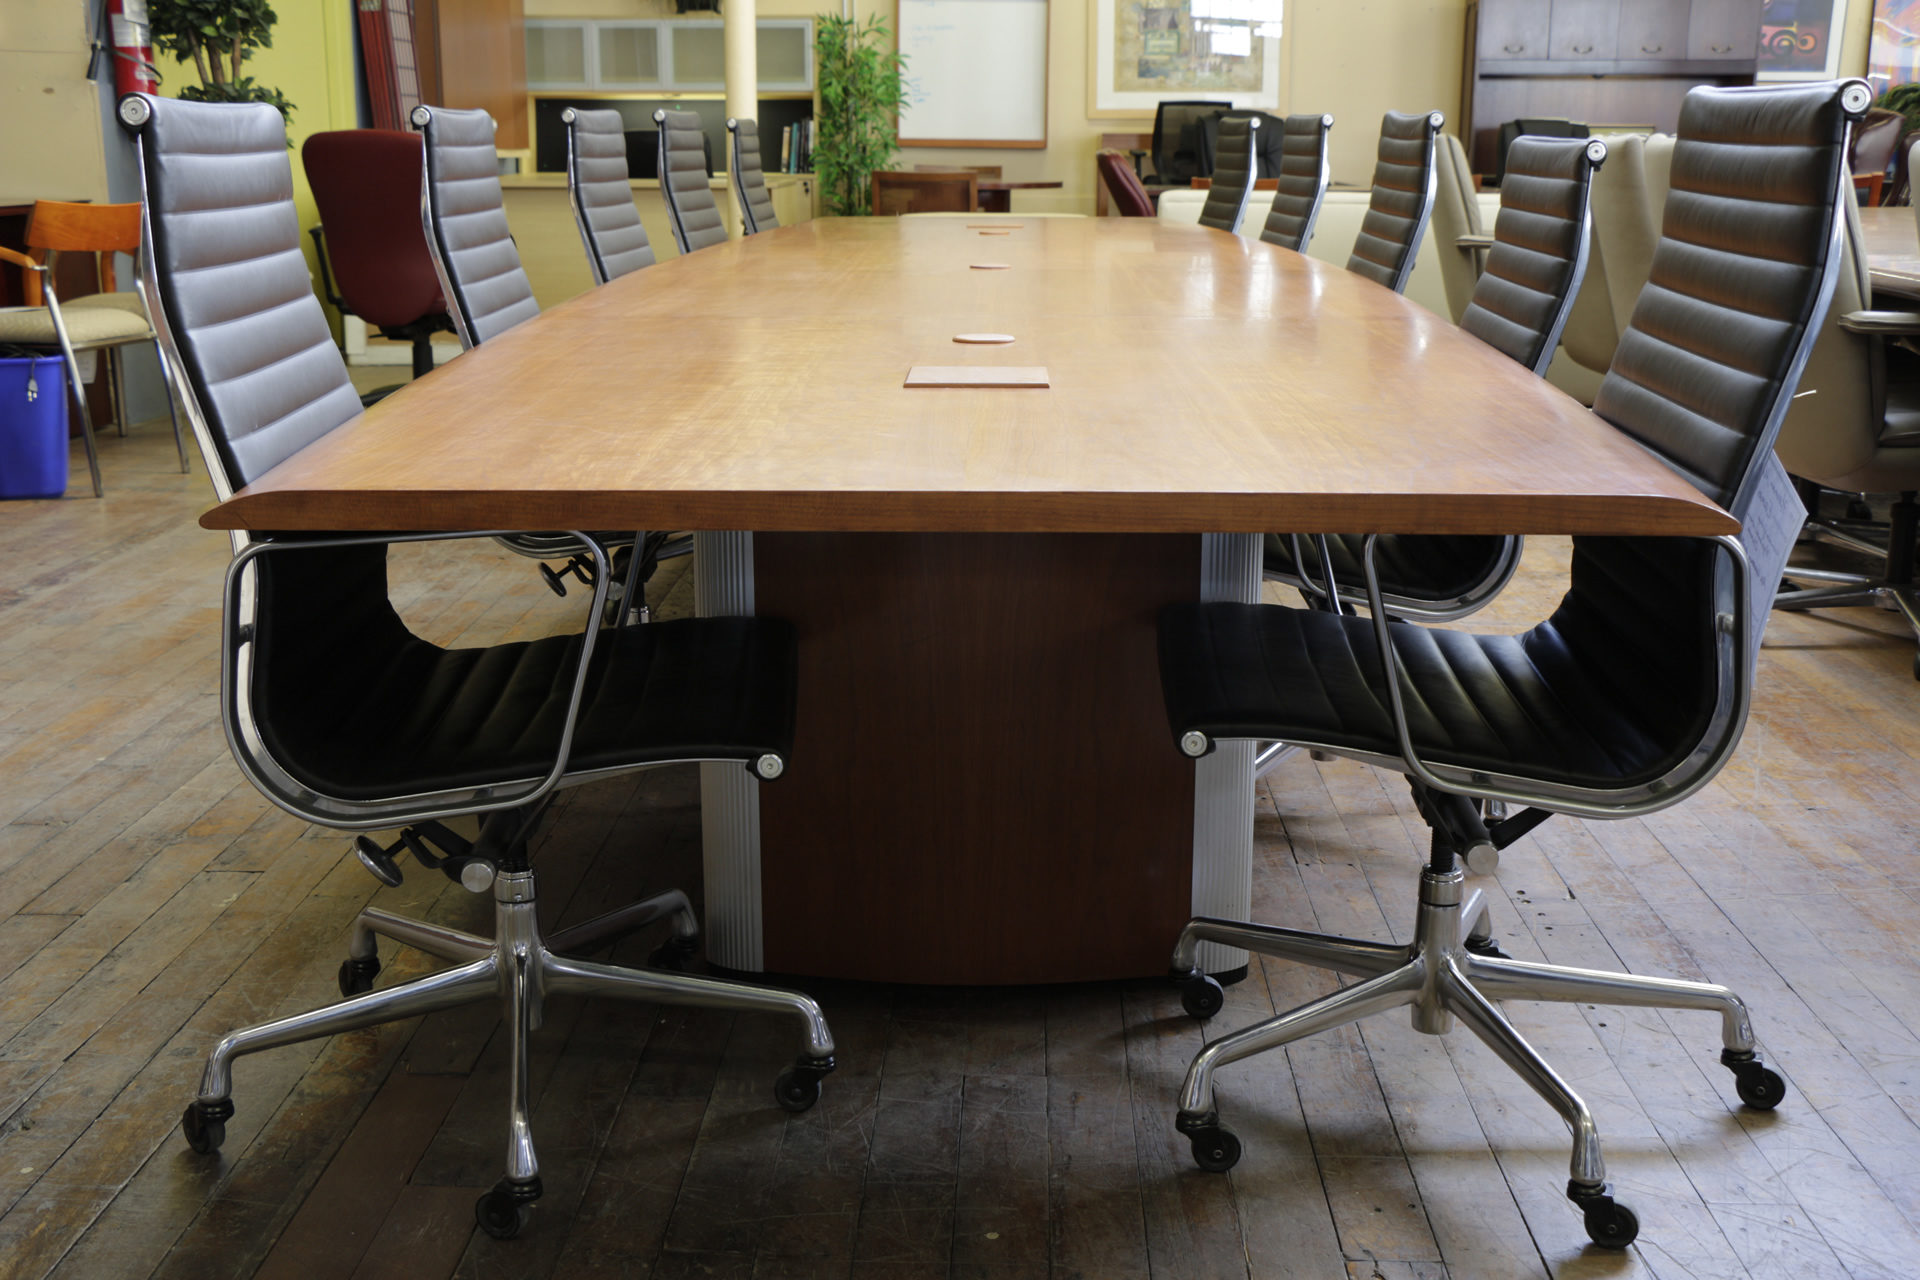 peartreeofficefurniture_peartreeofficefurniture_mg_3843.jpg